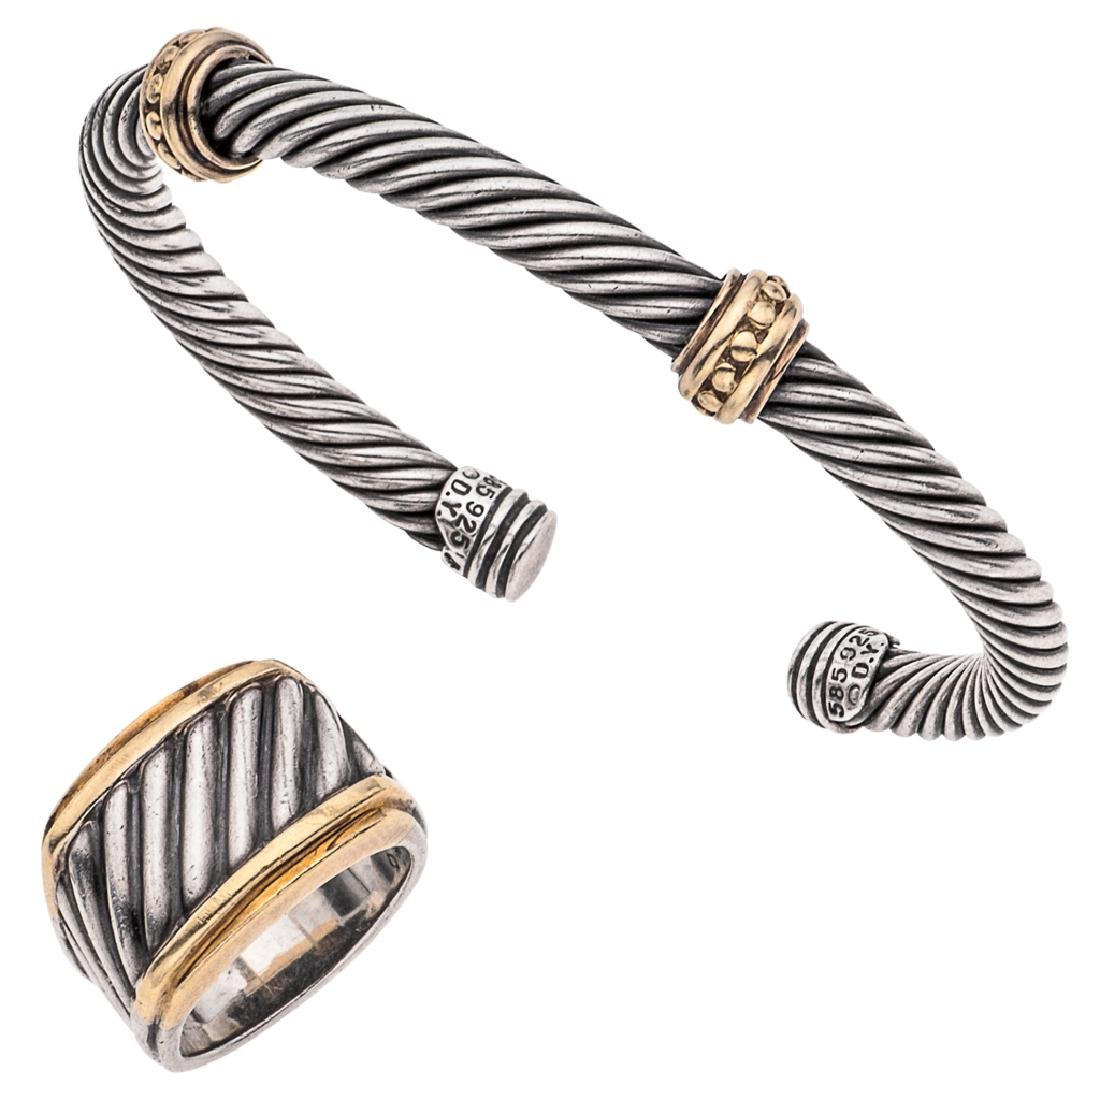 A DAVID YURMAN sterling silver and 14K yellow gold